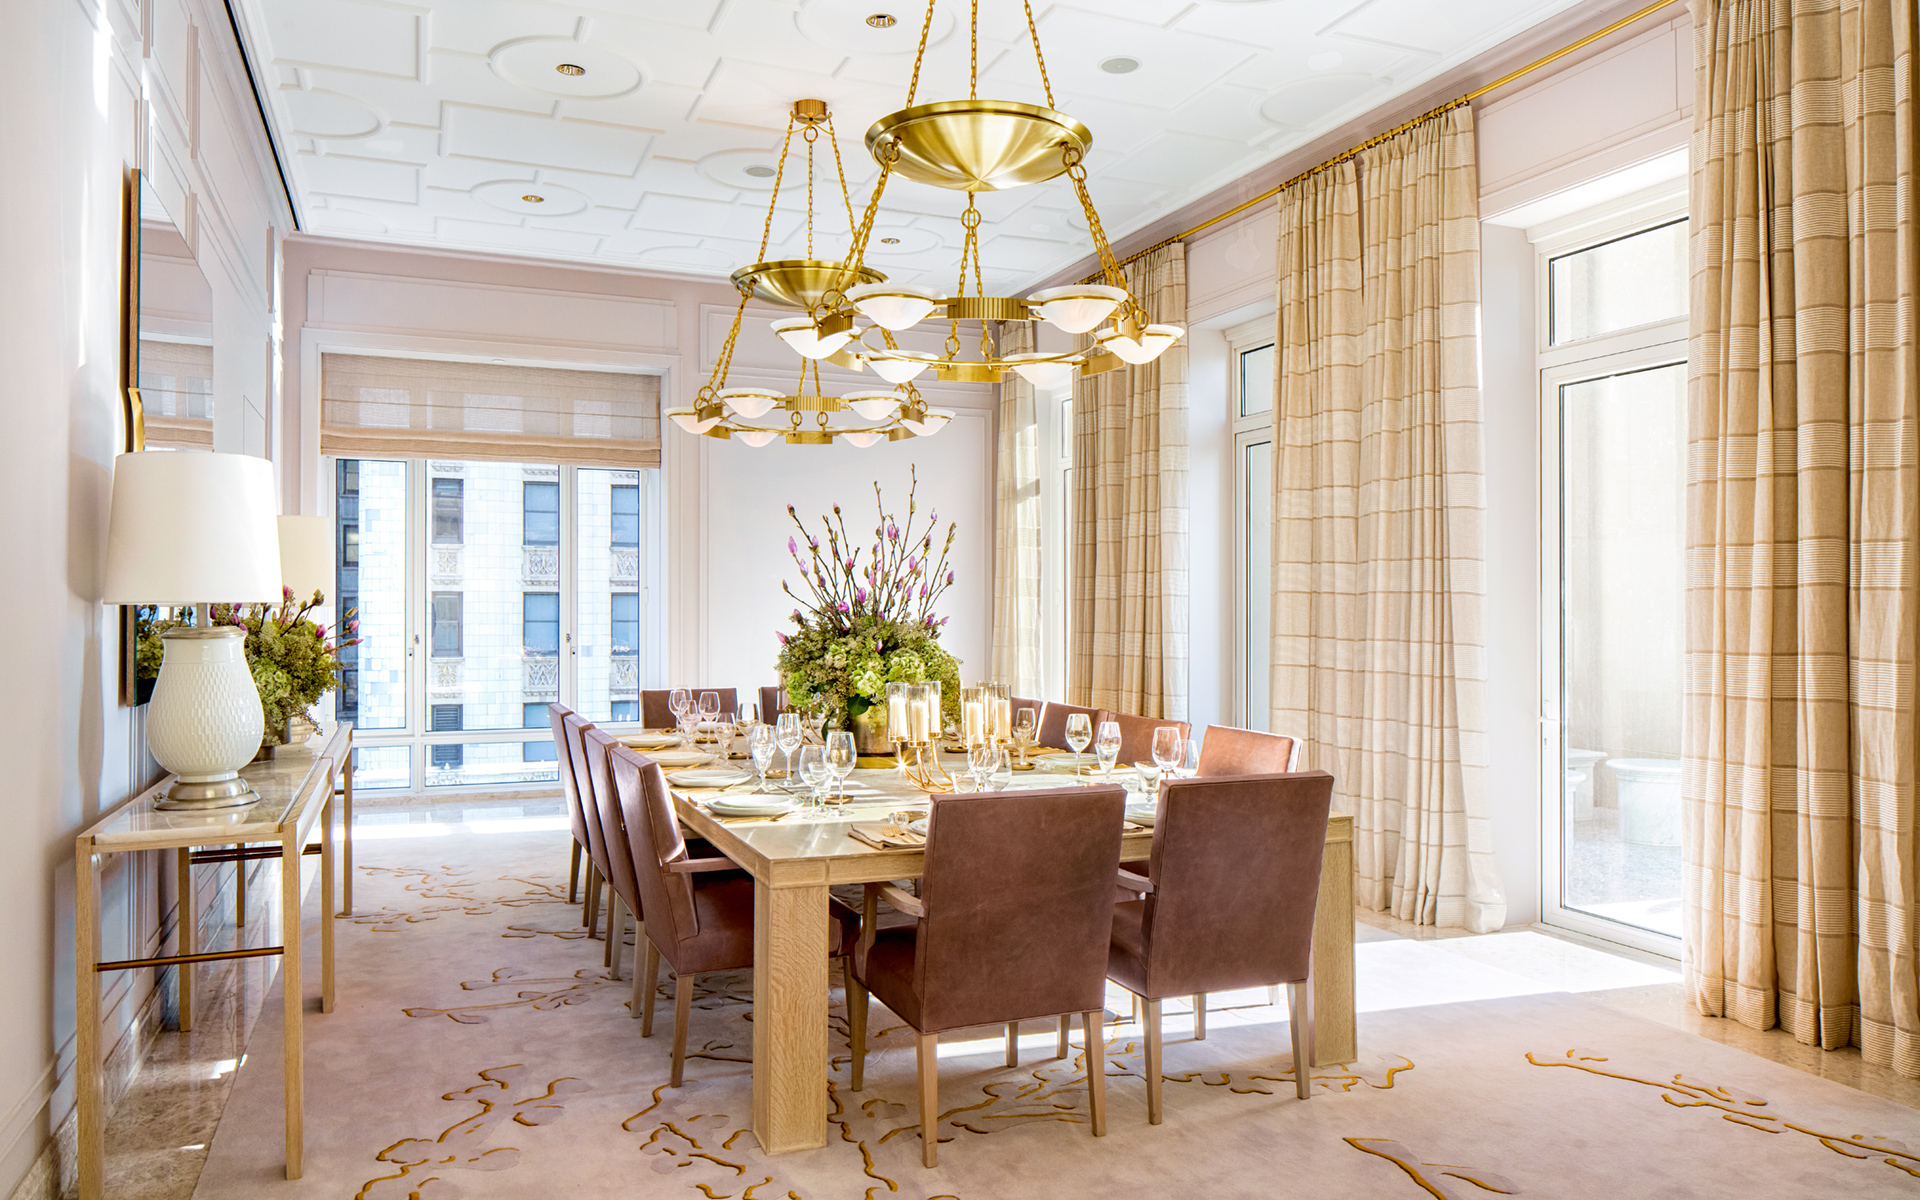 Private dining room with appliqué decorative ceiling, catering pantry, and adjacent loggia.